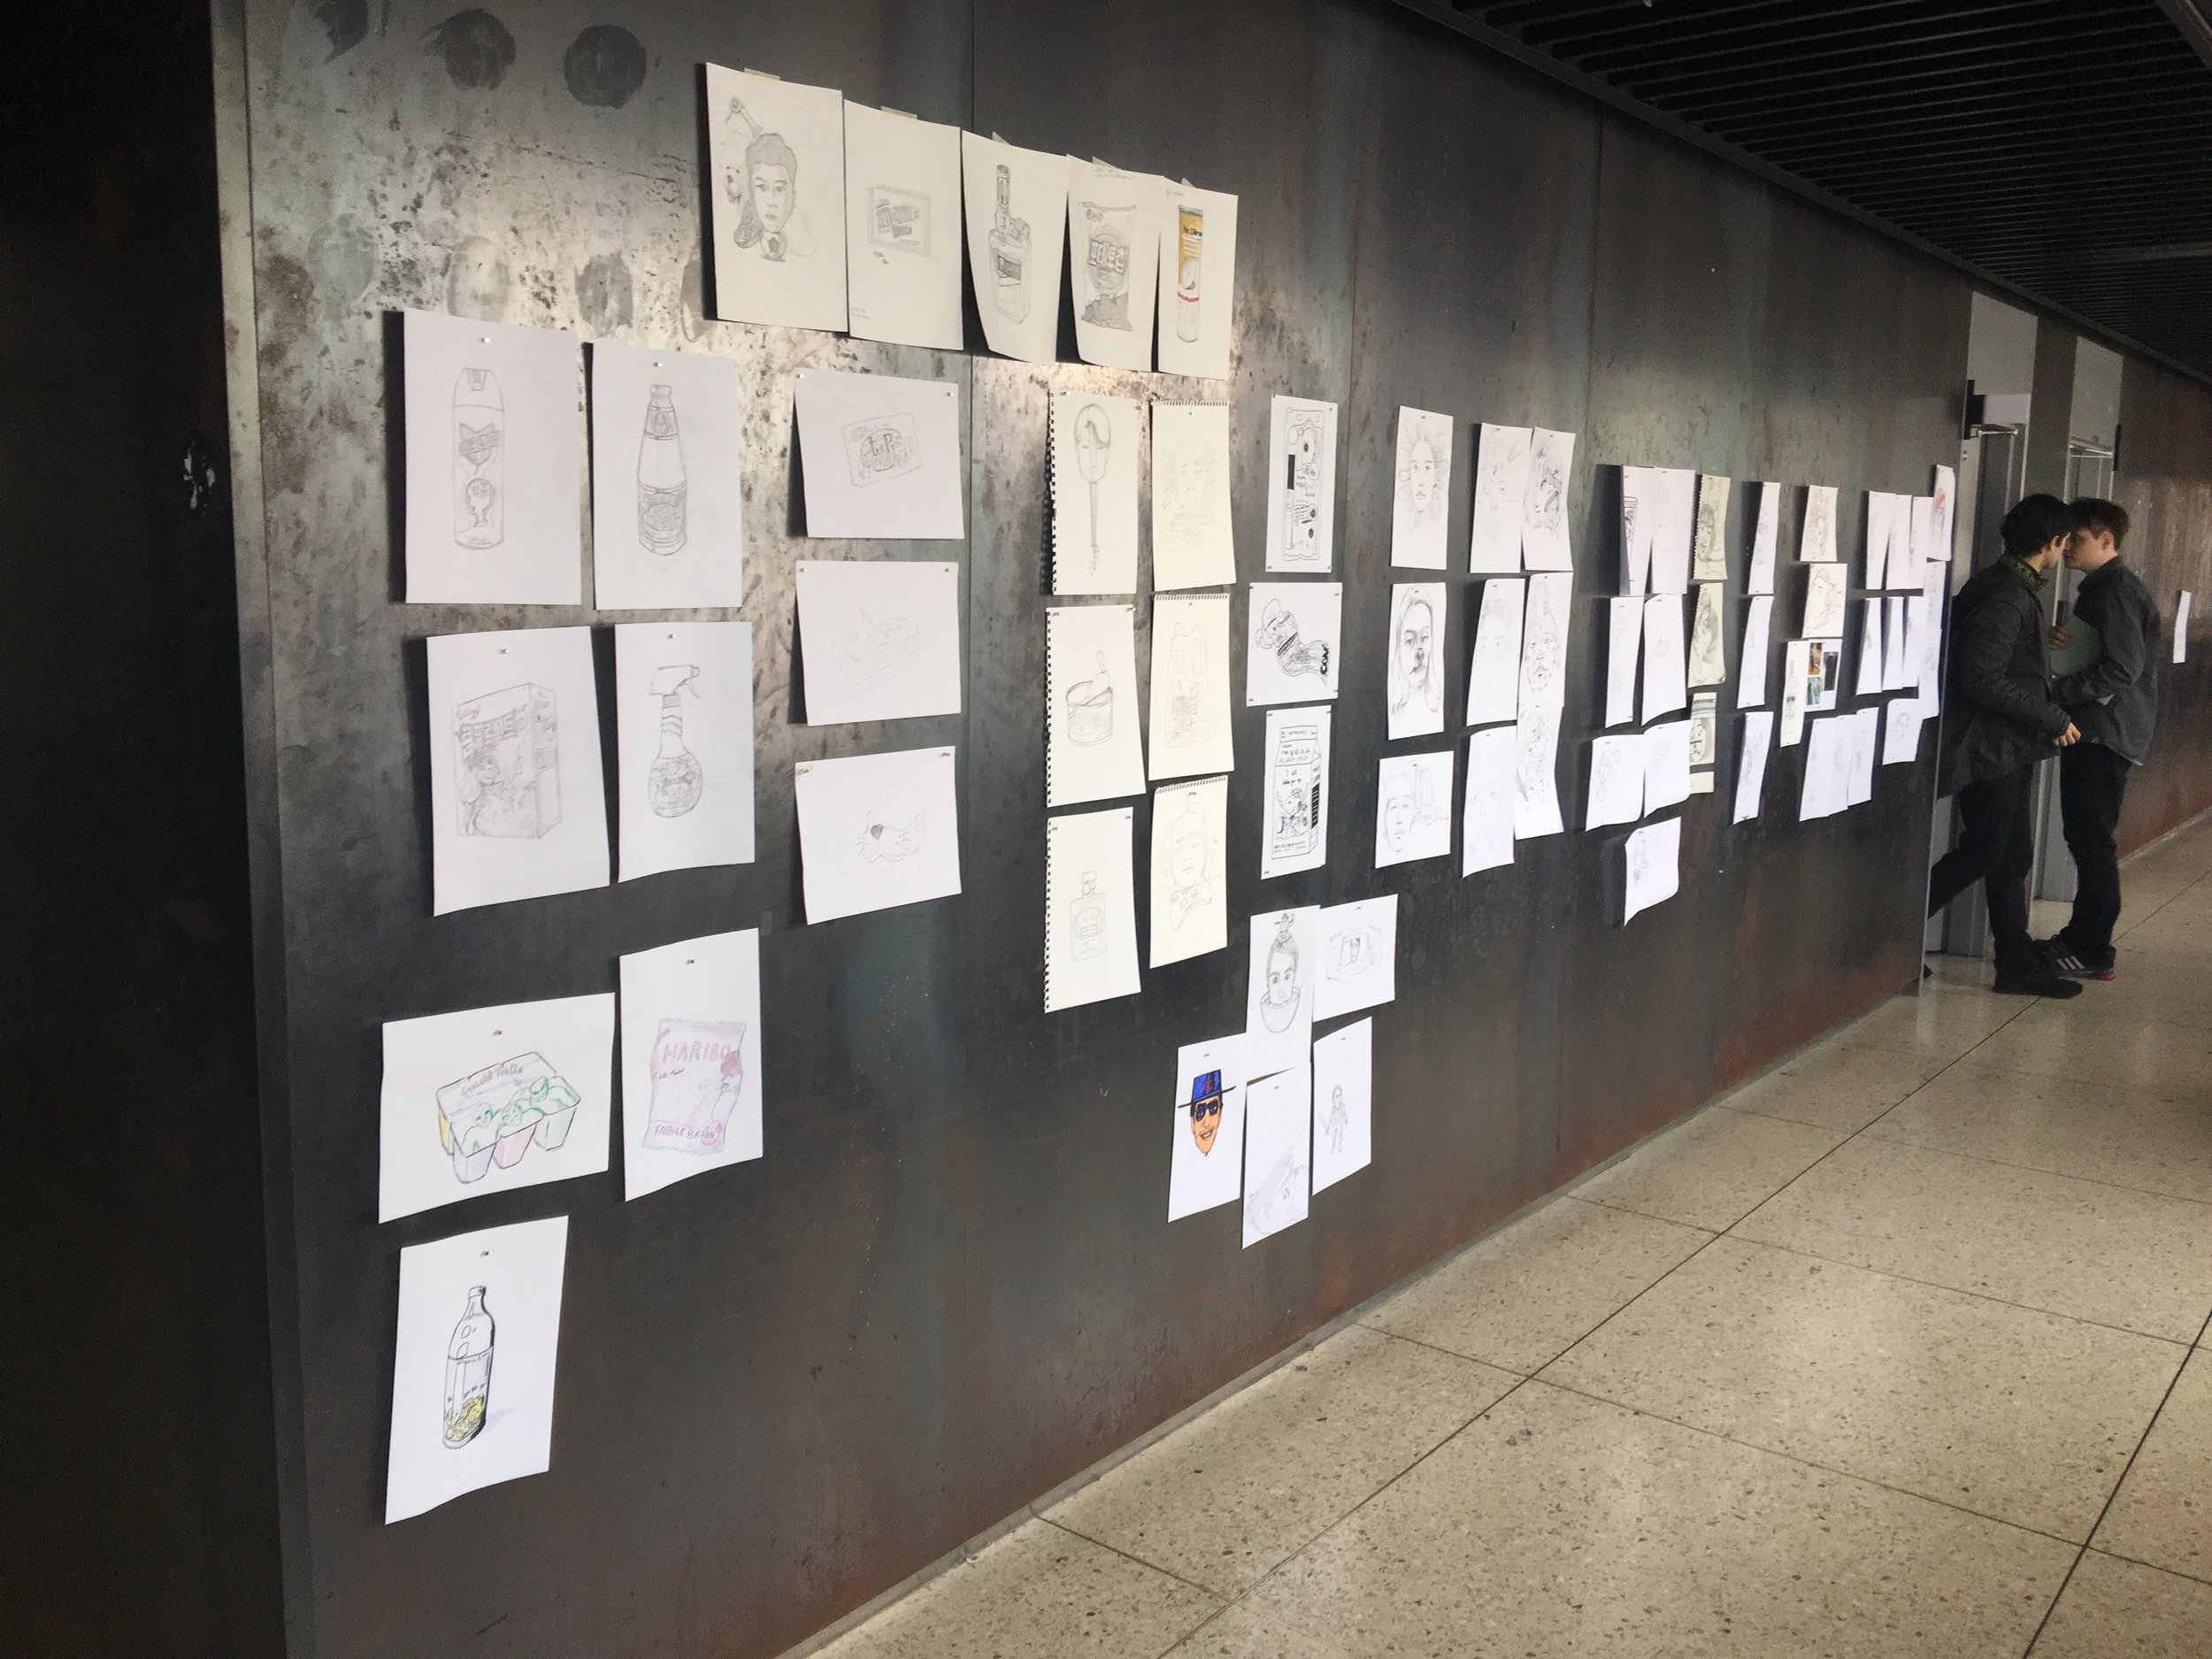 At Kookmin Univ. -Sketch Wall Critique (Those two are my foreign students from Europe.)